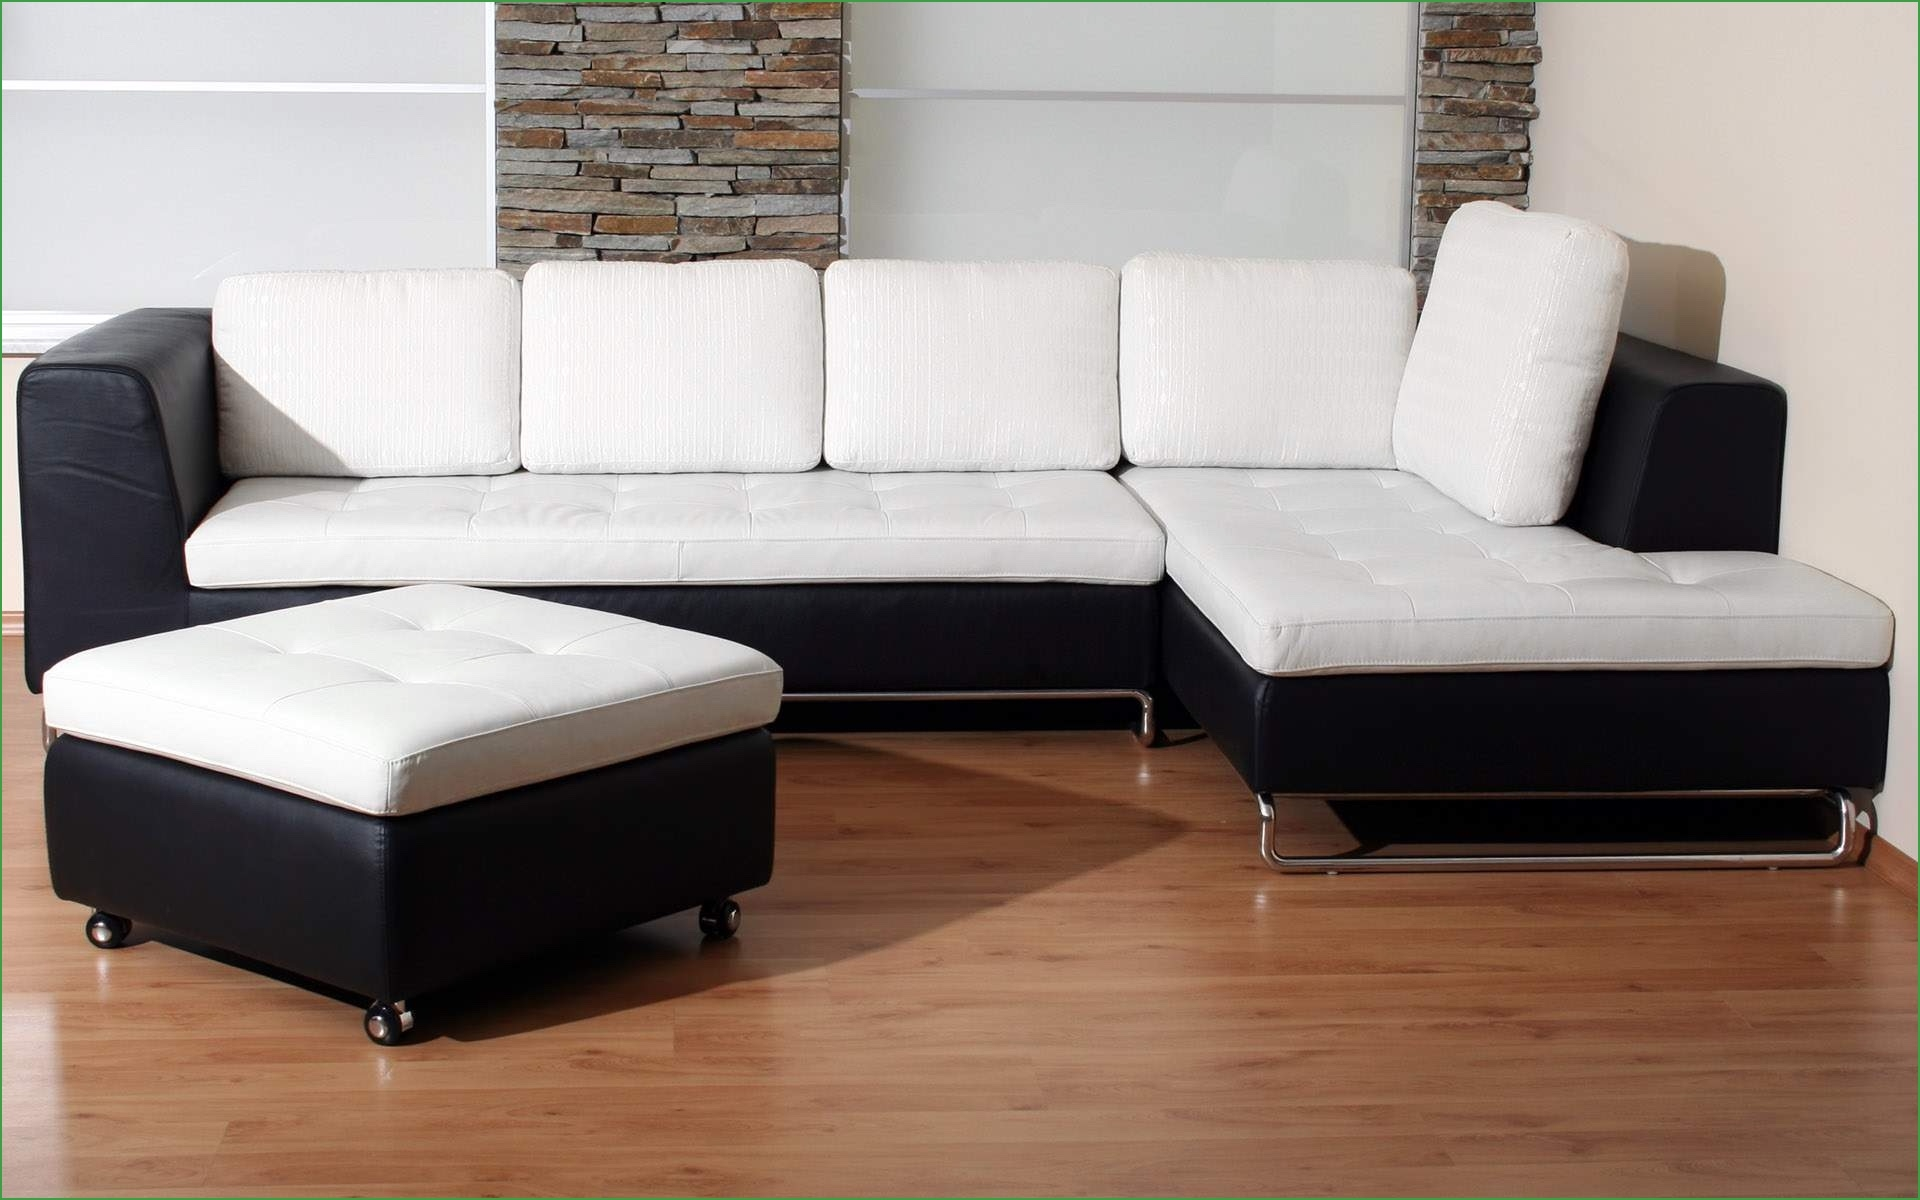 12 Ideas Of Black And White Sectional Sofa